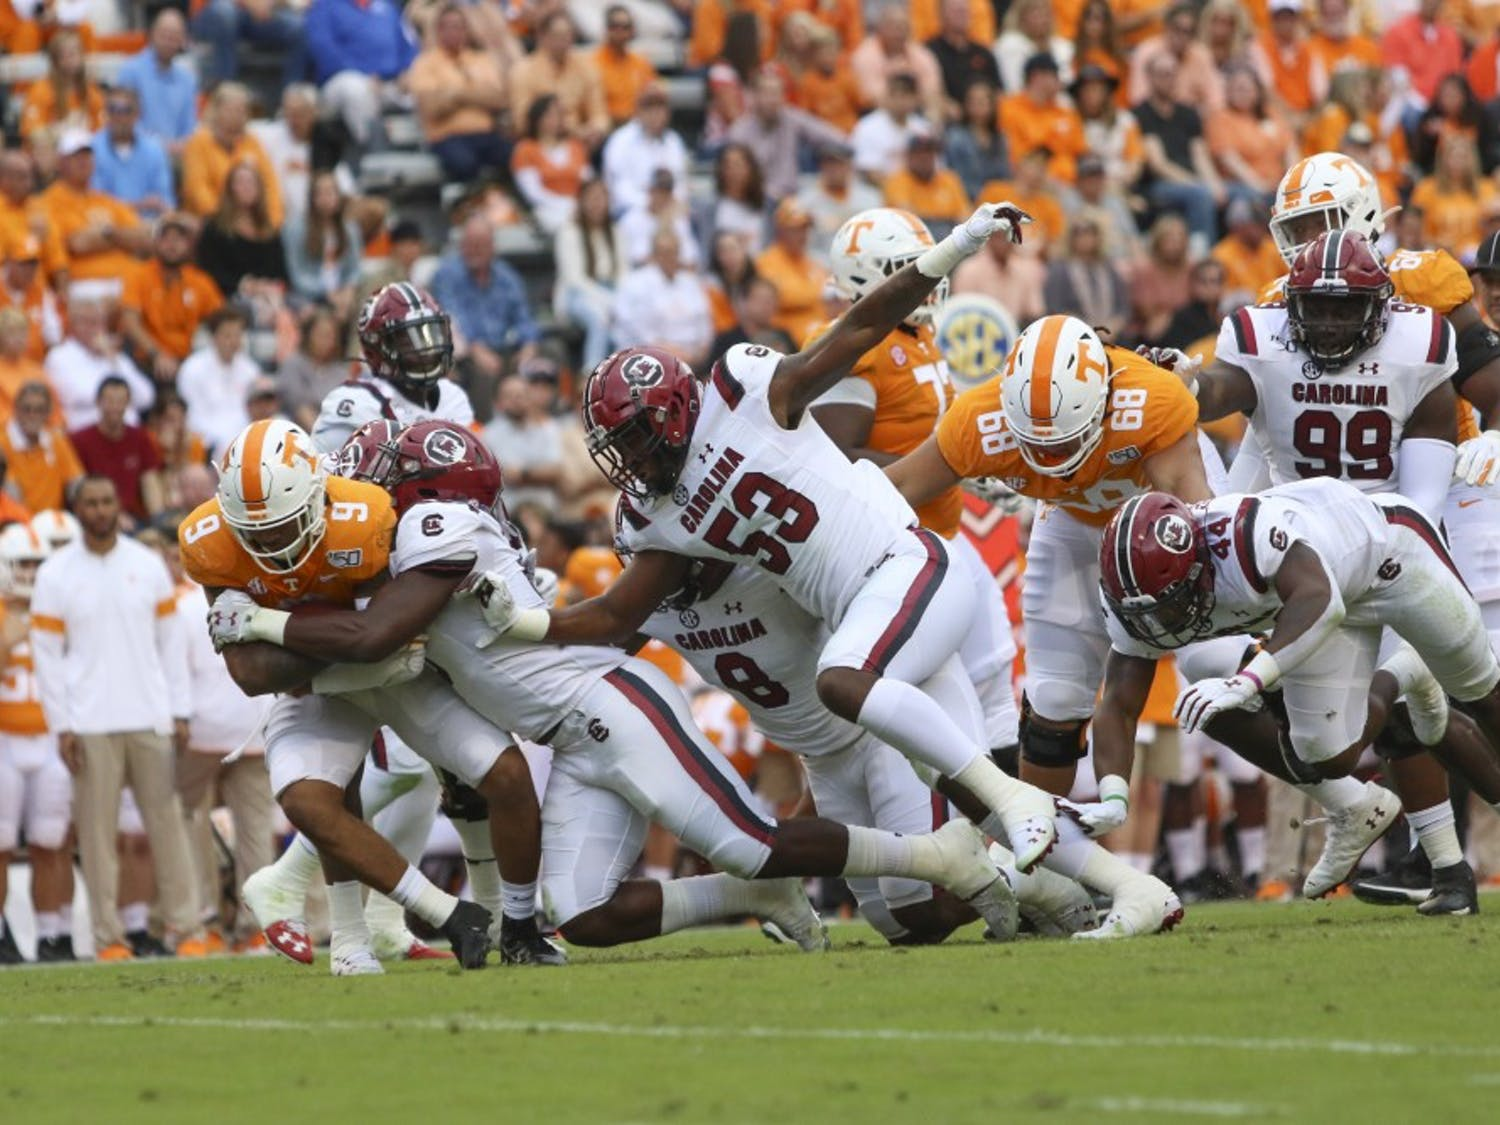 University of South Carolina football player tackles a University of Tennessee player Oct. 26, 2019. South Carolina lost 41-21.